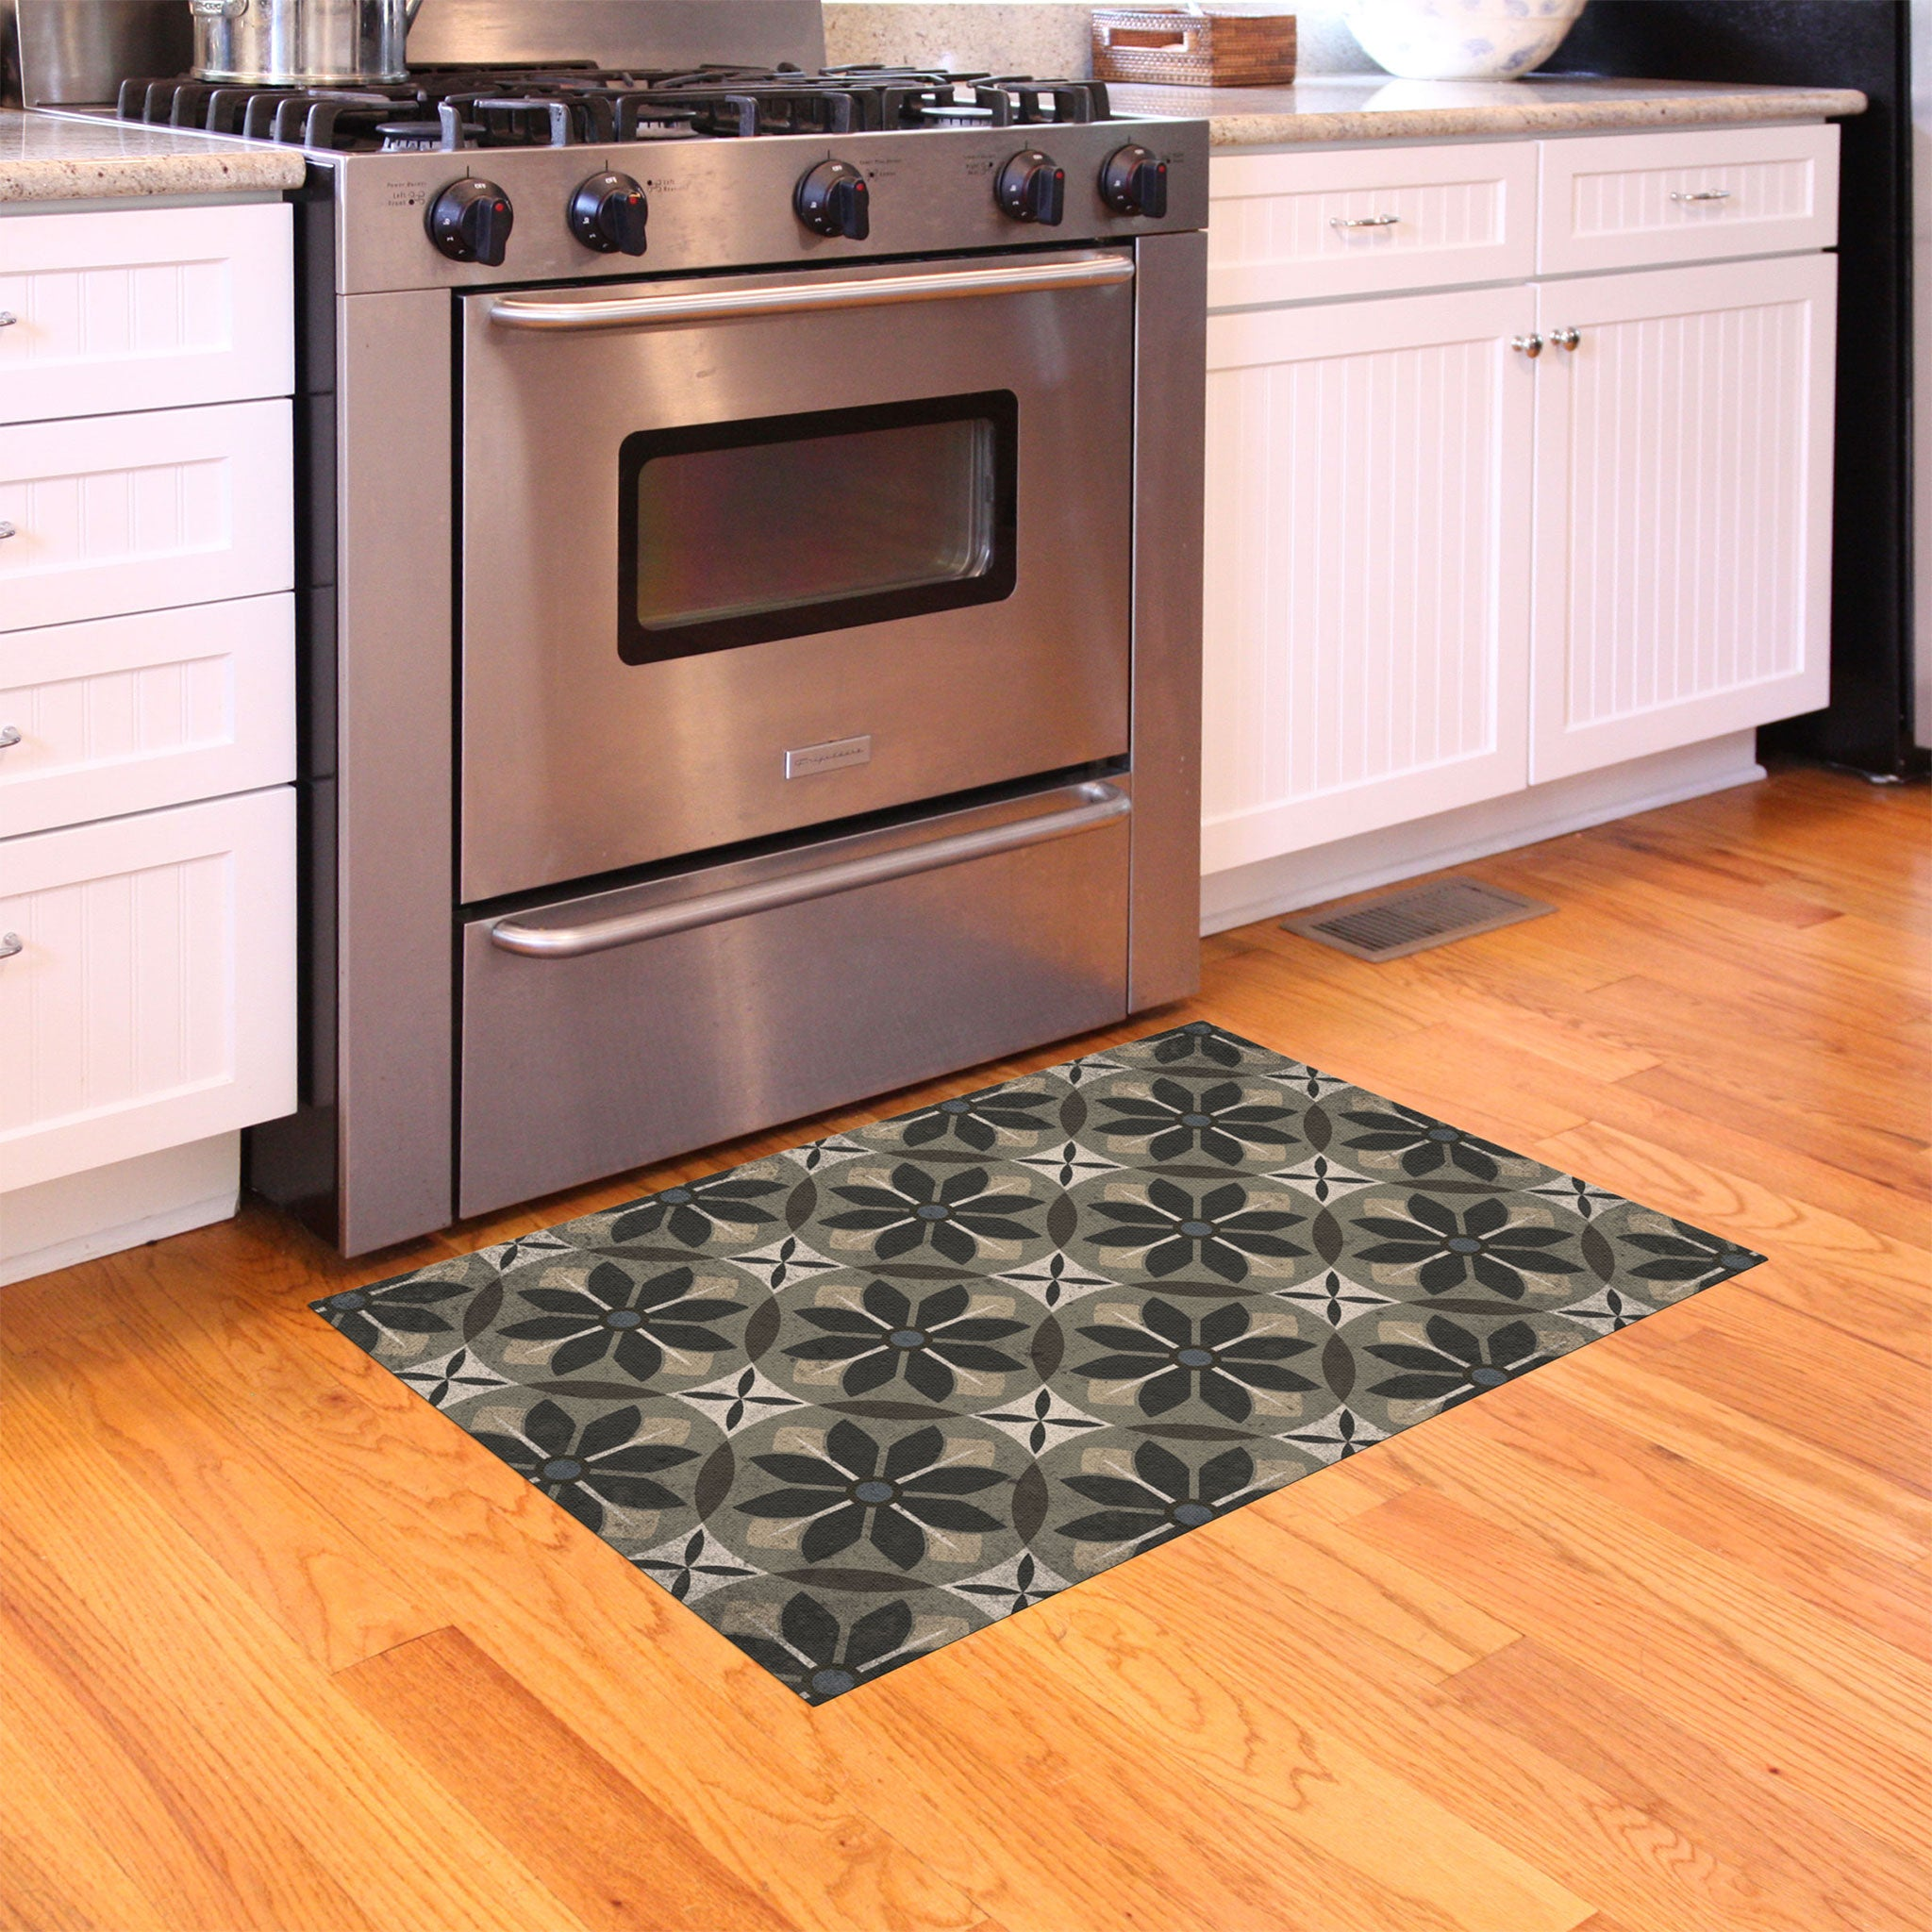 2020 FlorArt Nazareth White - Low Profile Decorative Floor Mat - Made in USA